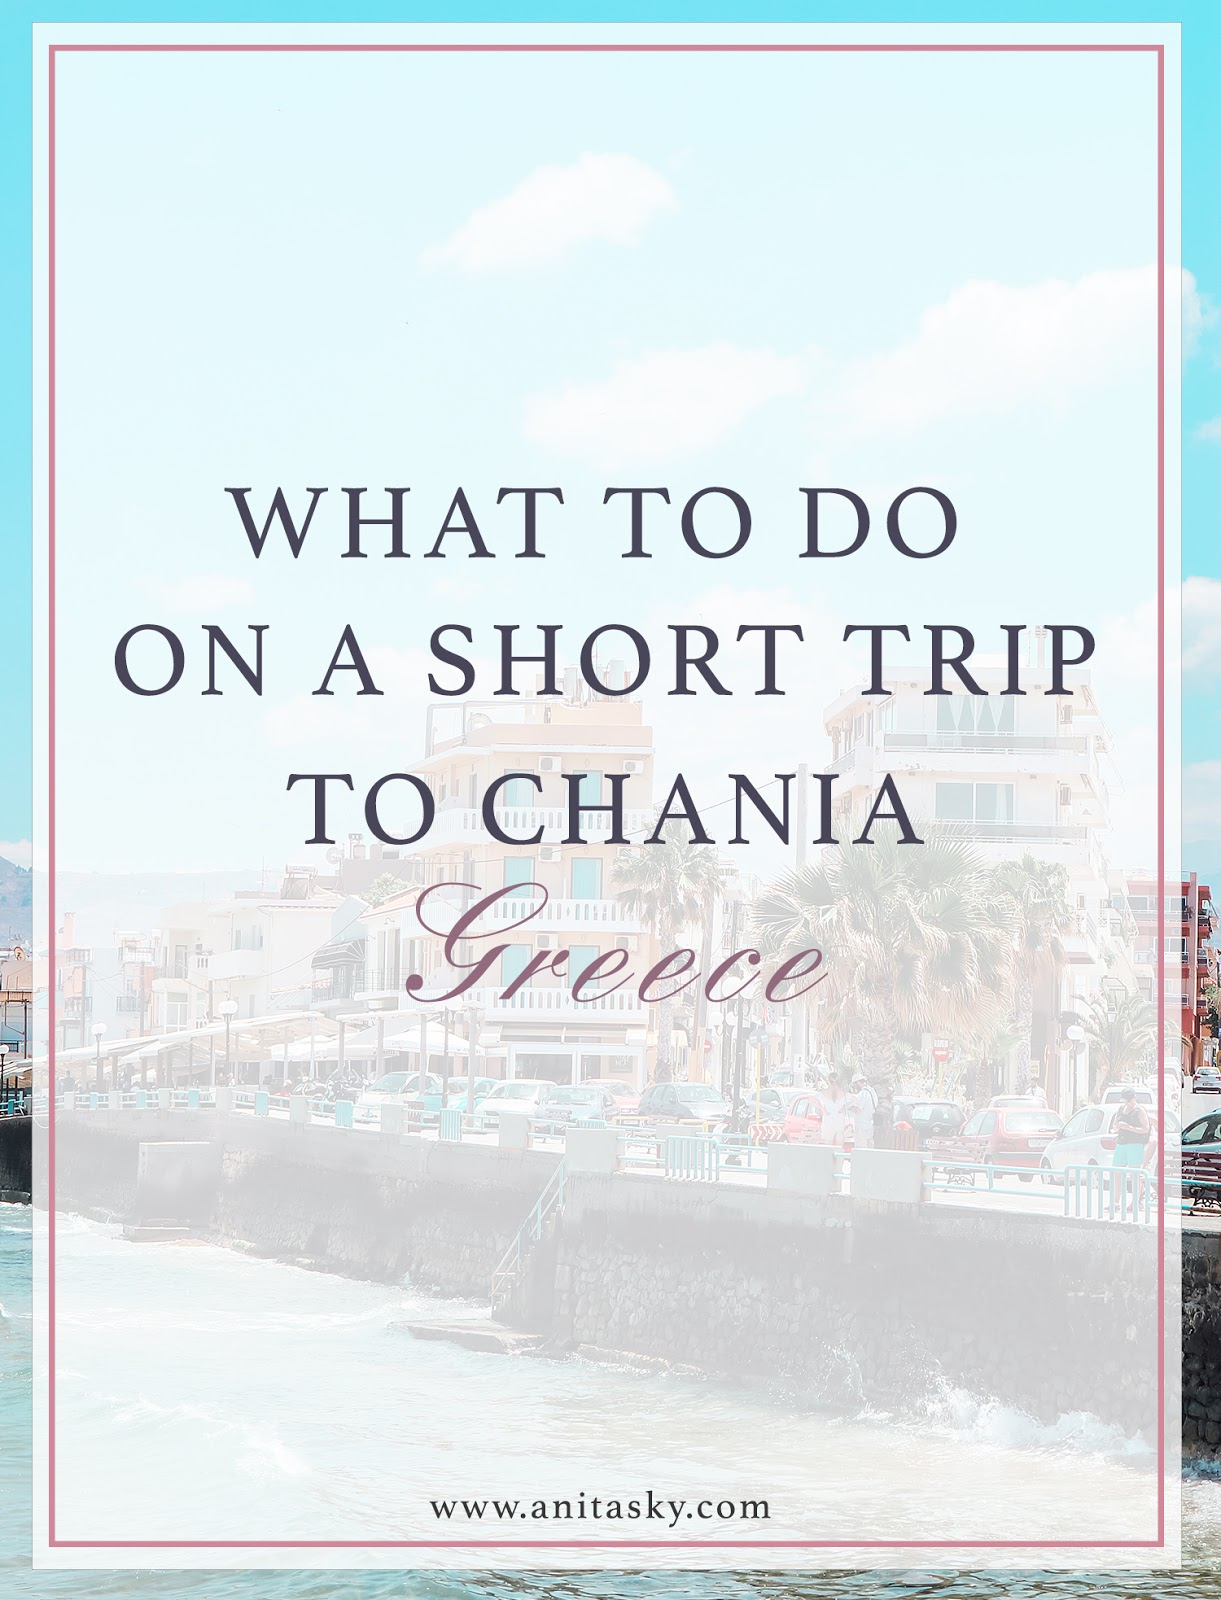 What to see when visiting Chania, Crete